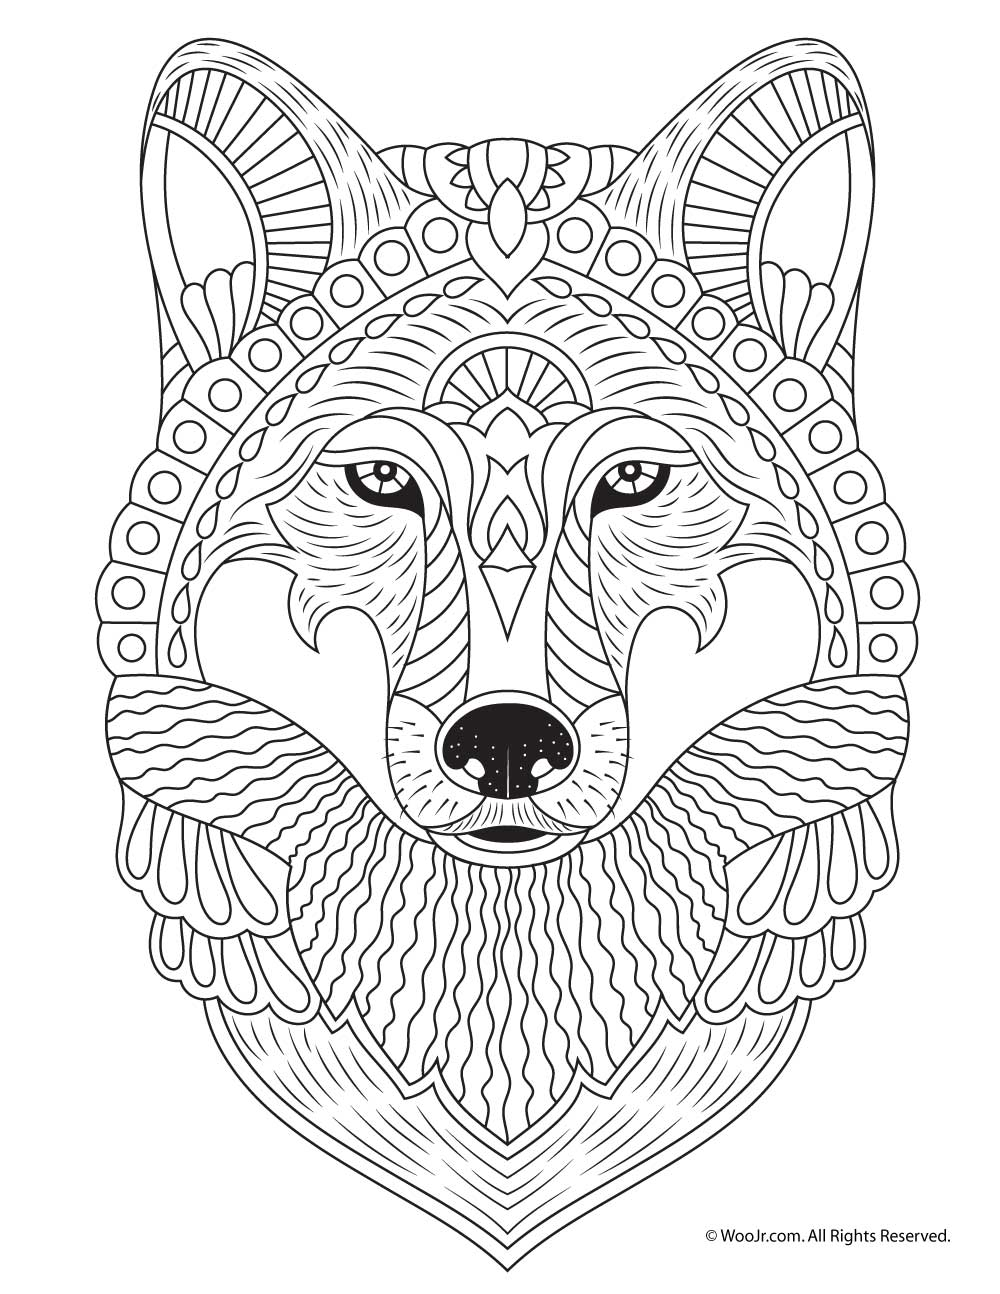 coloring animal online 30 free coloring pages a geometric animal coloring online coloring animal